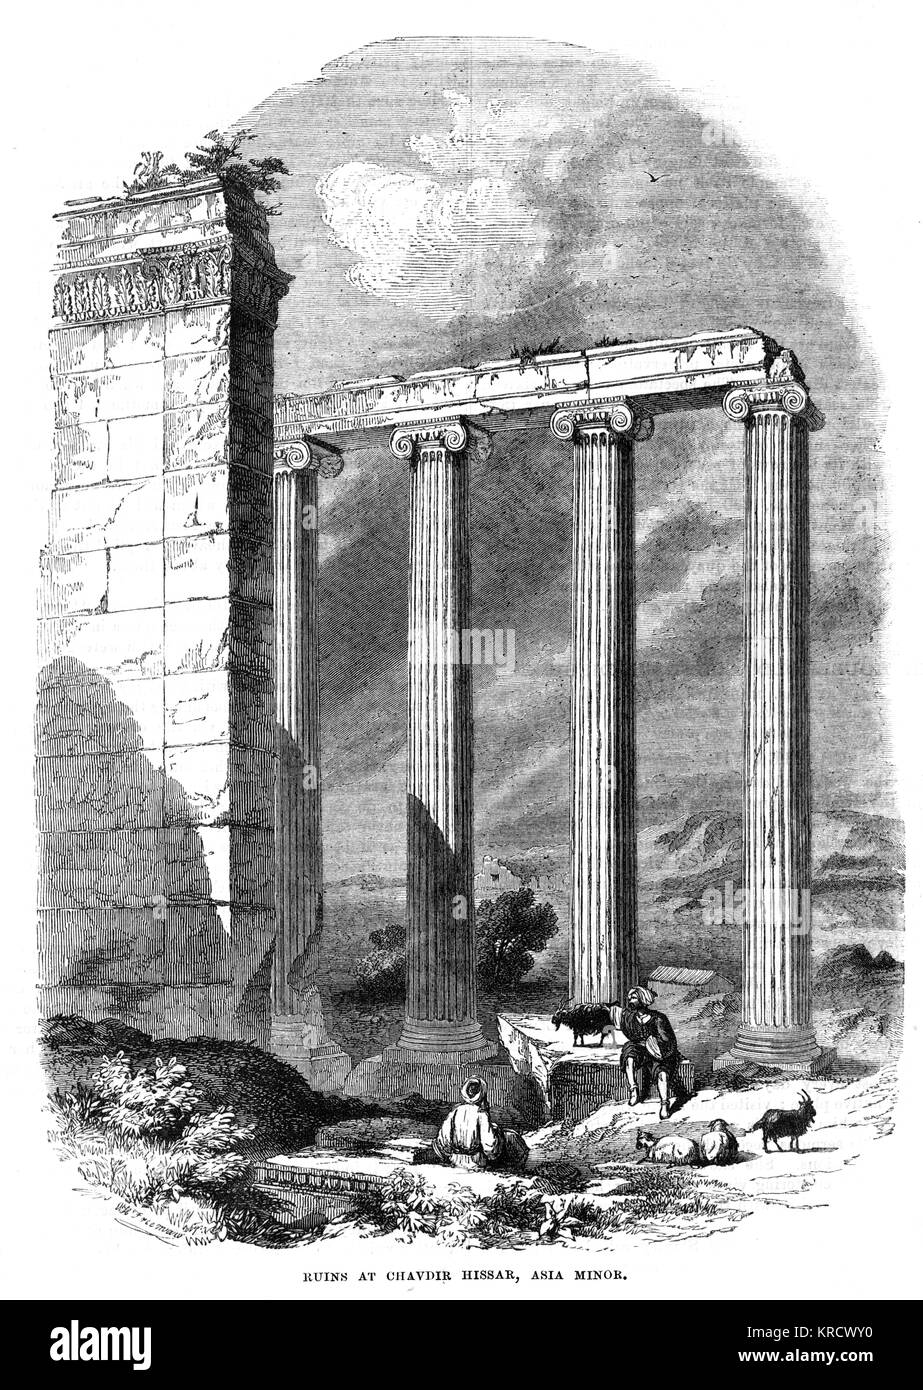 The ruins of Hellenistic period buildings at Cavdir. Date: 1880 - Stock Image